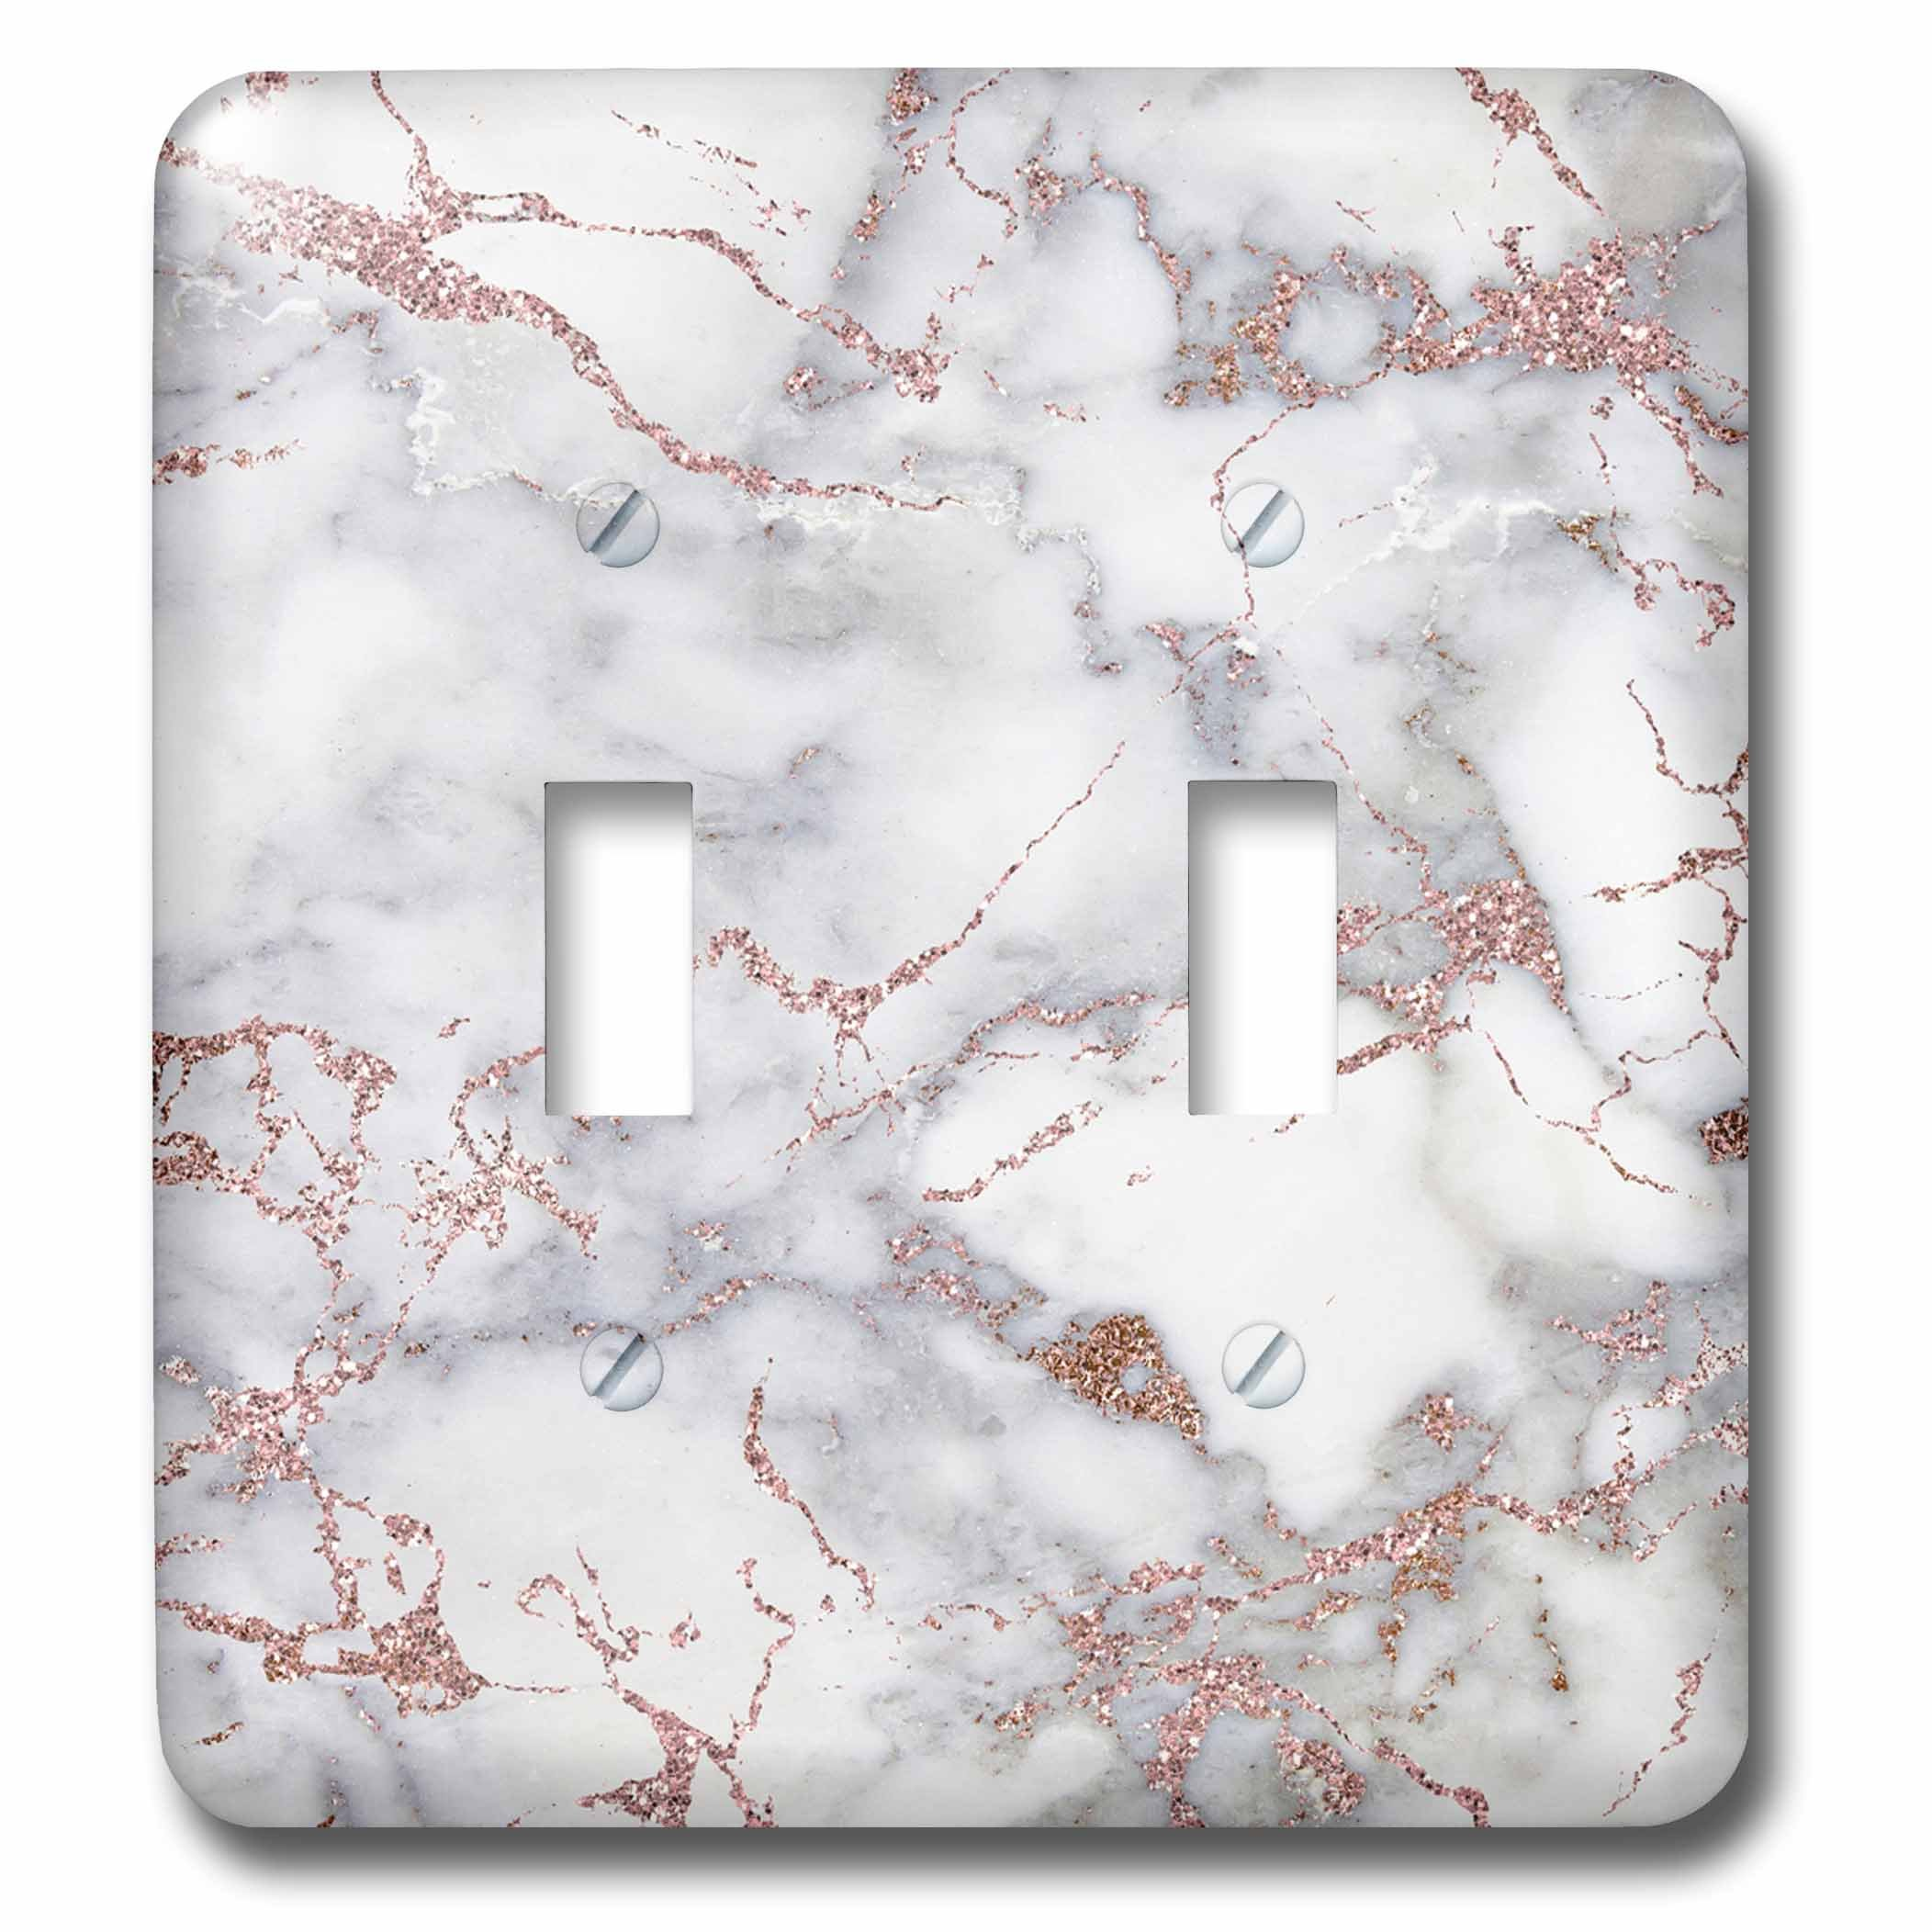 3dRose LSP_275086_2 Image of Shiny Luxury Trendy Rose Gold Glitter Marble Agate Quartz Toggle Switch,